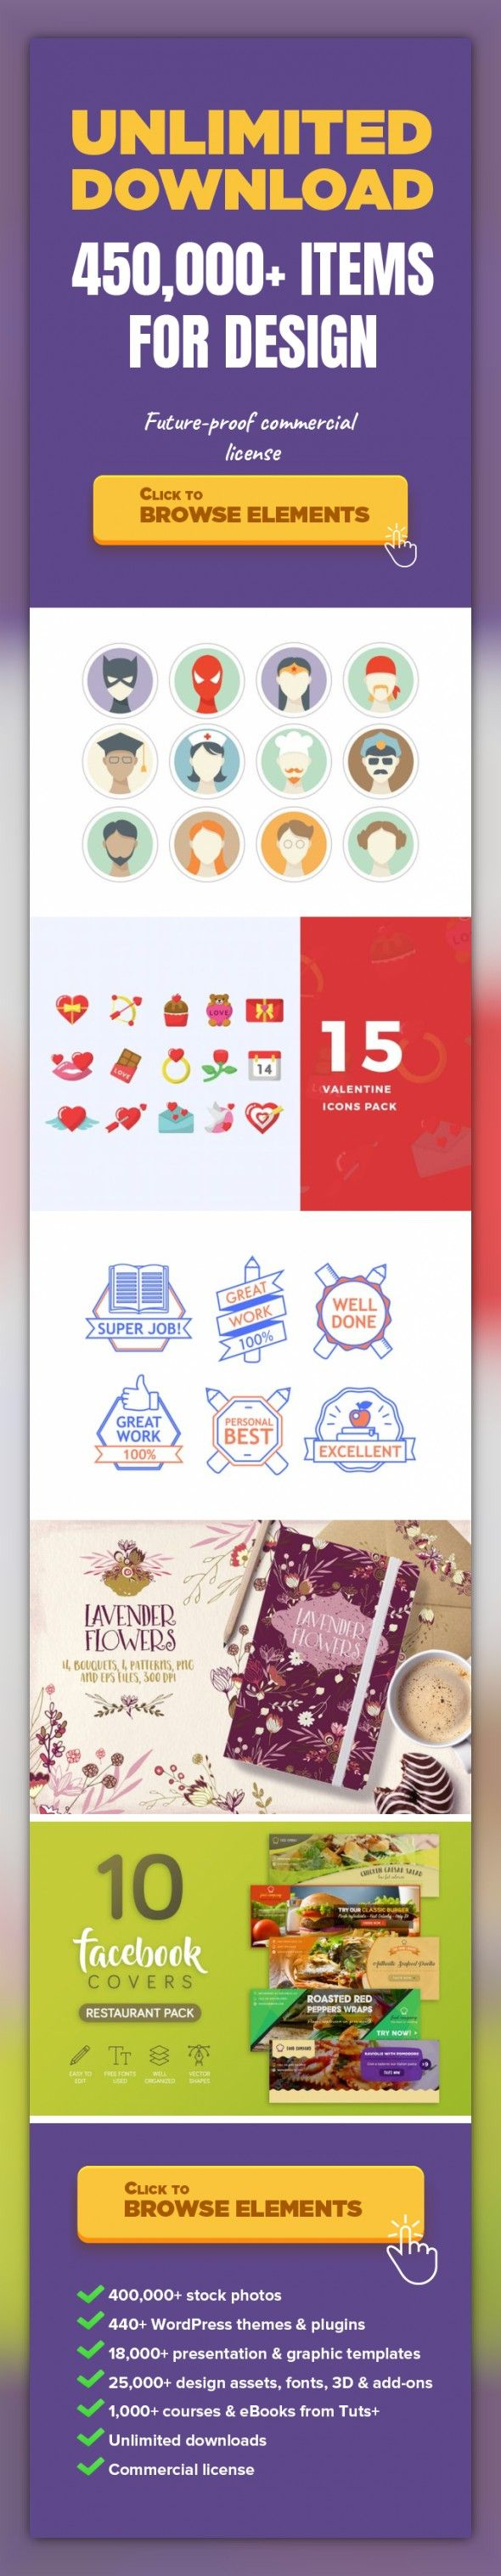 People Faces Icons / 3 Different Themes Graphics, Vectors, Icons, Objects, Illustrations people, faces, icons, characters, occupations, batman, spiderman, student, policeman, woman, man, human, clown, doctor, haircut   People Faces Icons designed by Jumsoft.The package includes AI and EPS versions.